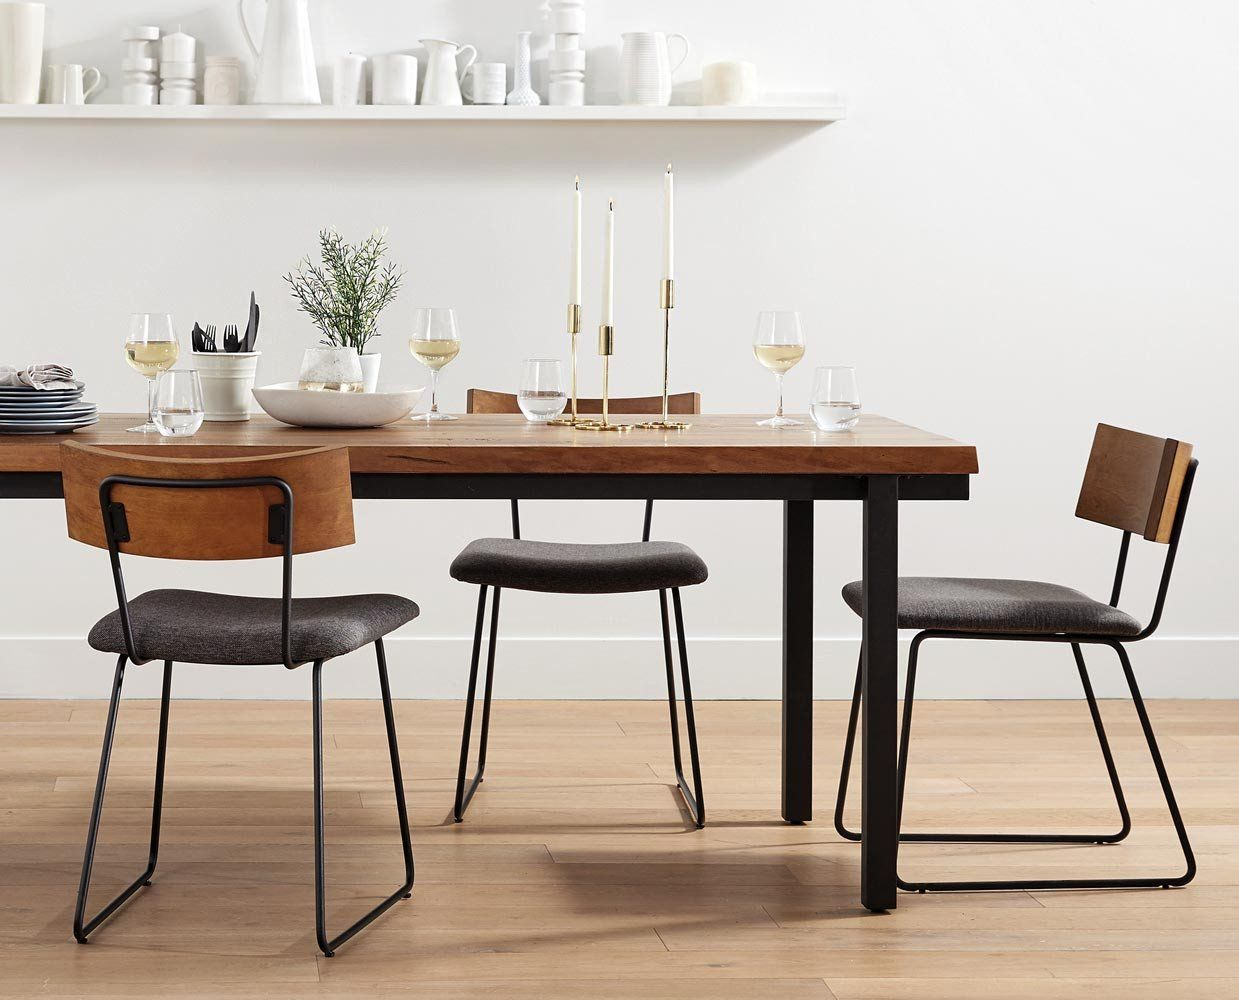 Karsten Dining Chair Rustic Industrial Dining Chair Minimalist